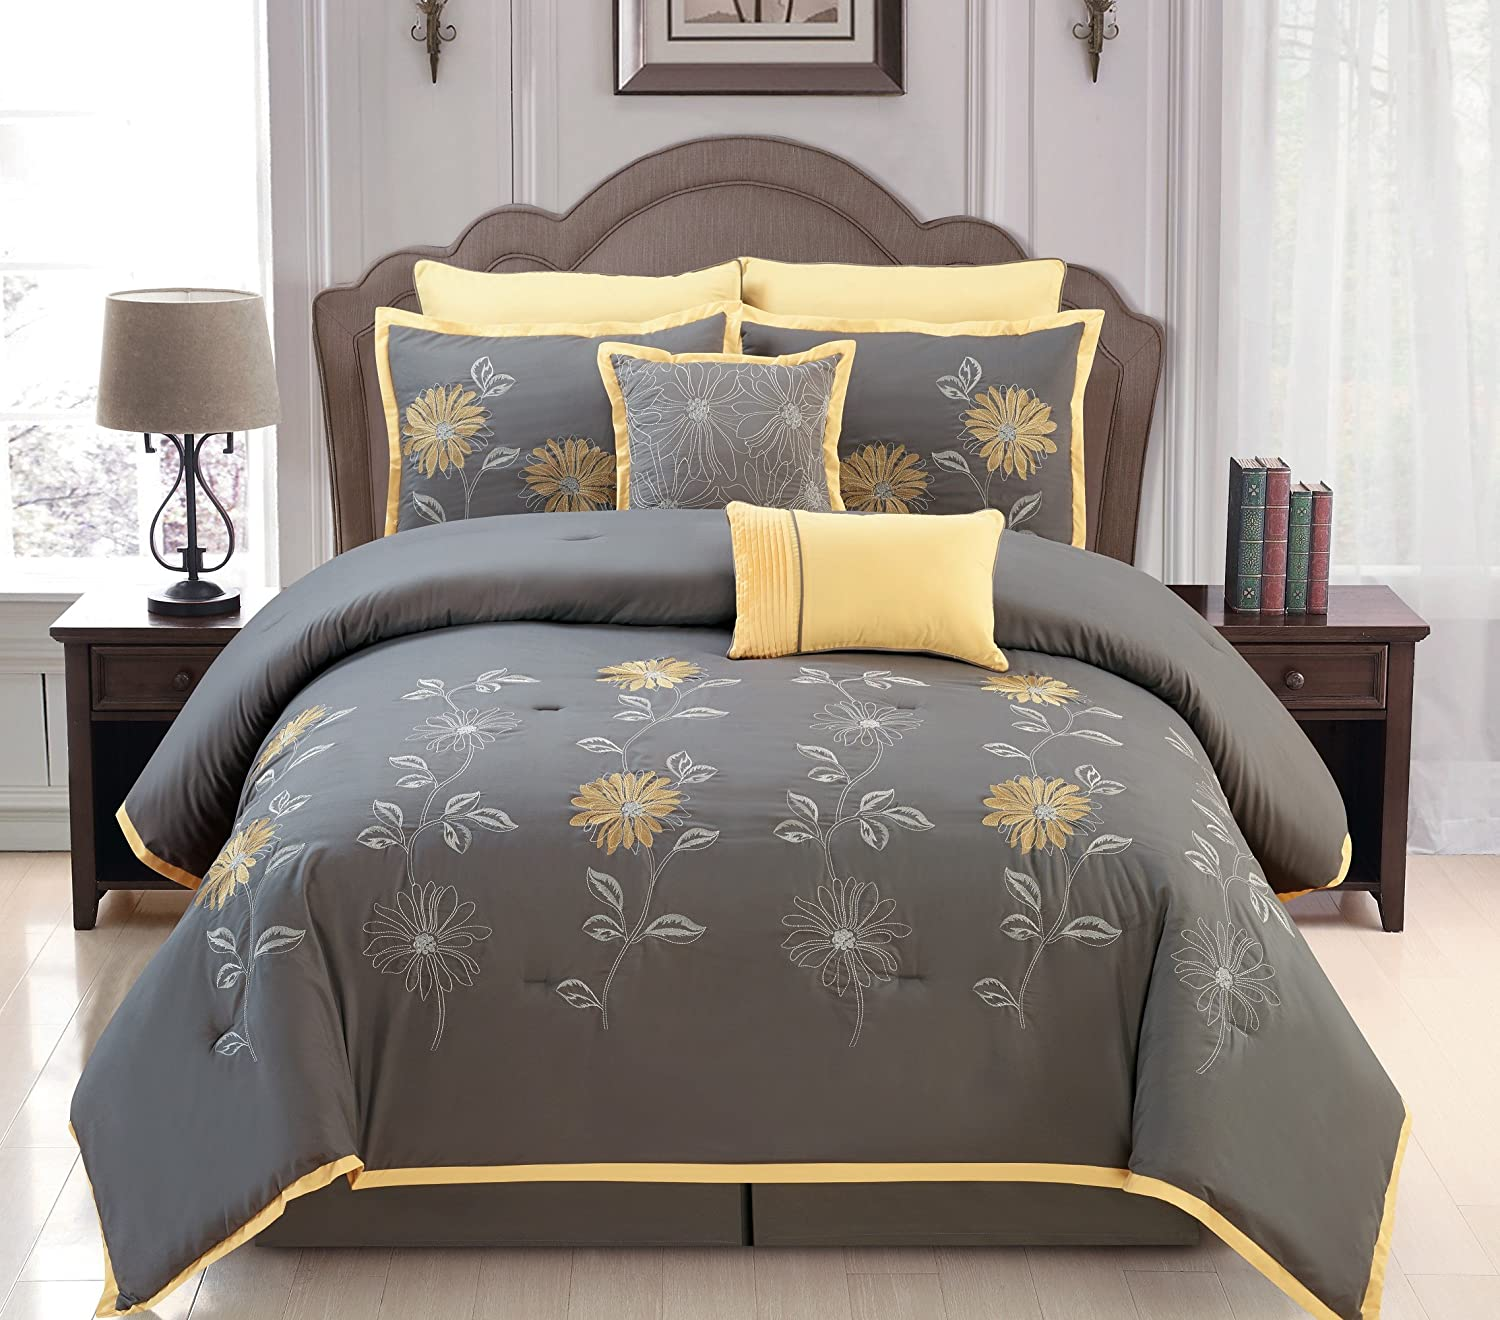 amazoncom sunshine yellow grey comforter set embroidery bed in a bag queen size bedding home u0026 kitchen